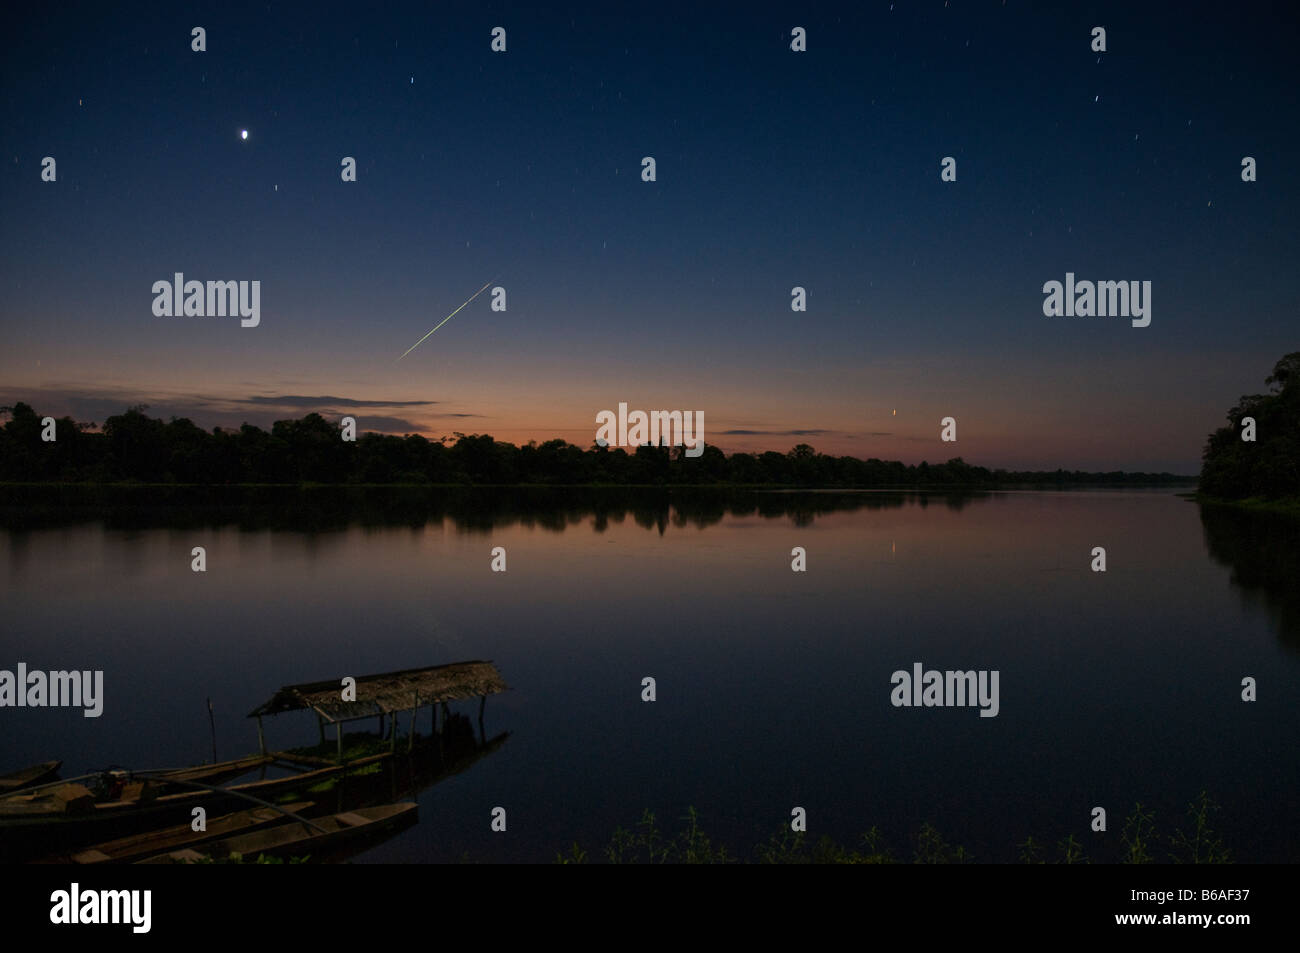 Lago El Dorado, Pacaya Samiria National Reserve at night with shooting star - Stock Image